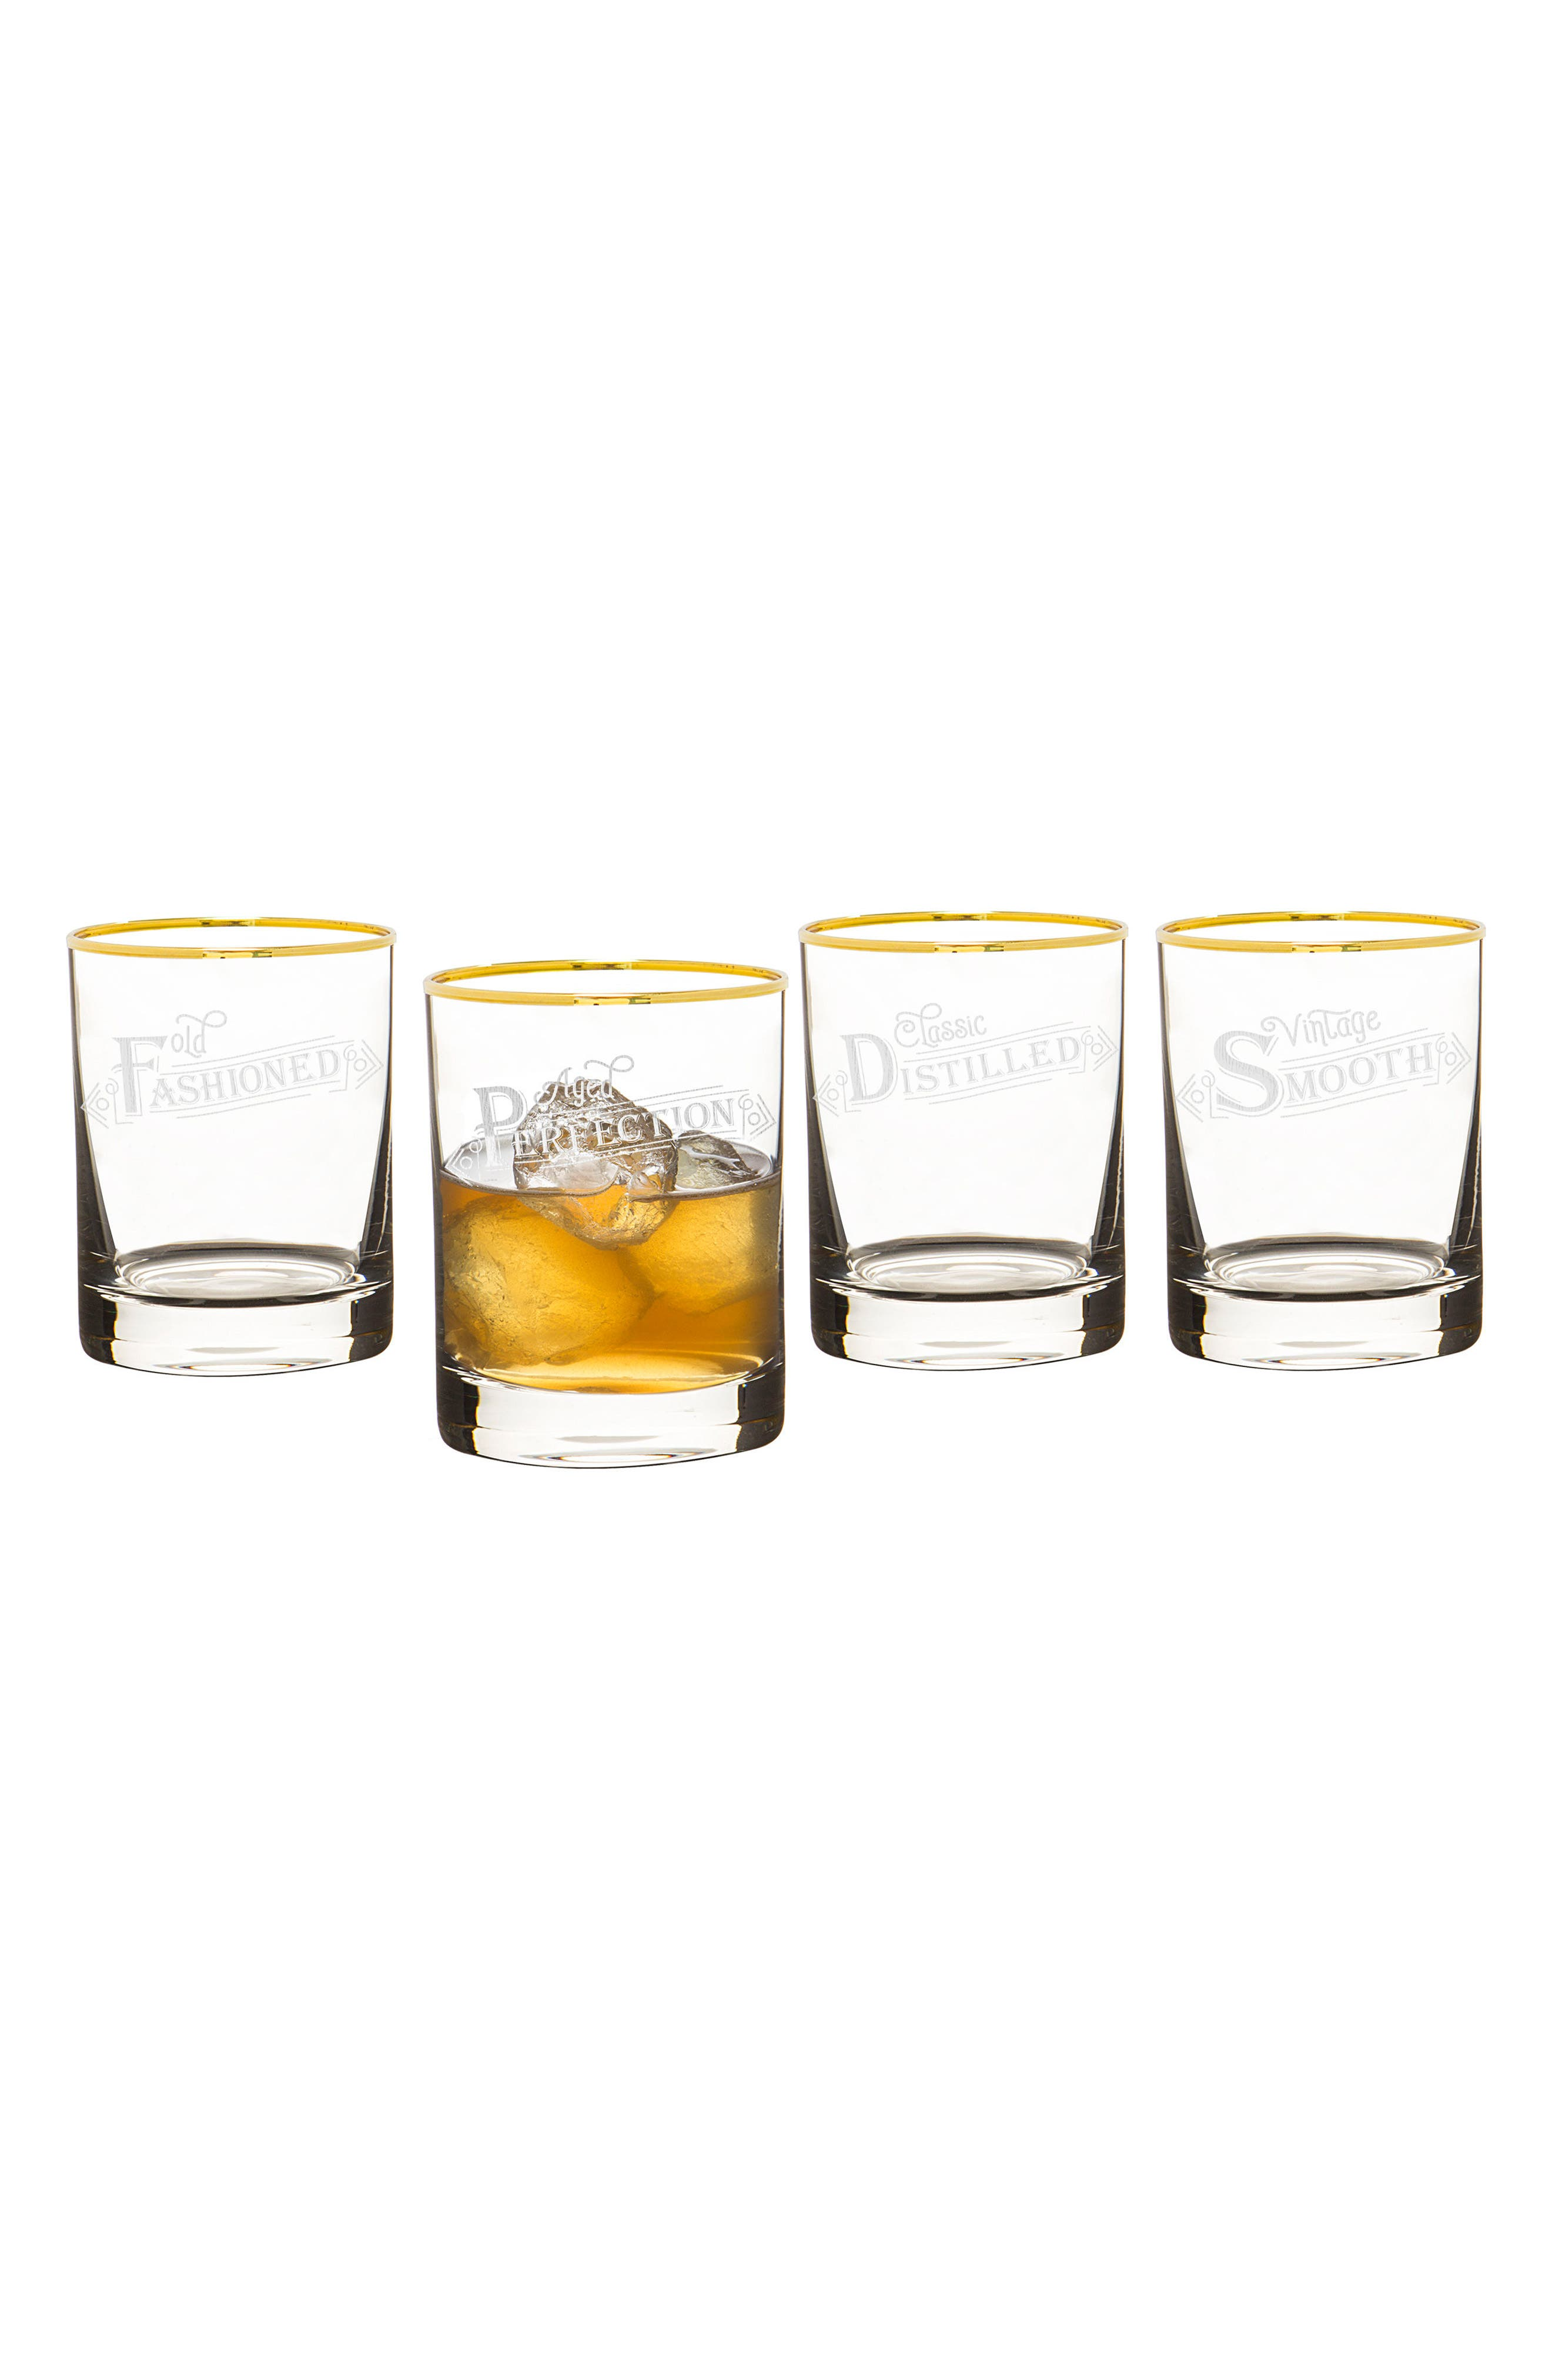 Set of 4 Gold Rim Old Fashioned Whiskey Glasses,                             Alternate thumbnail 2, color,                             110